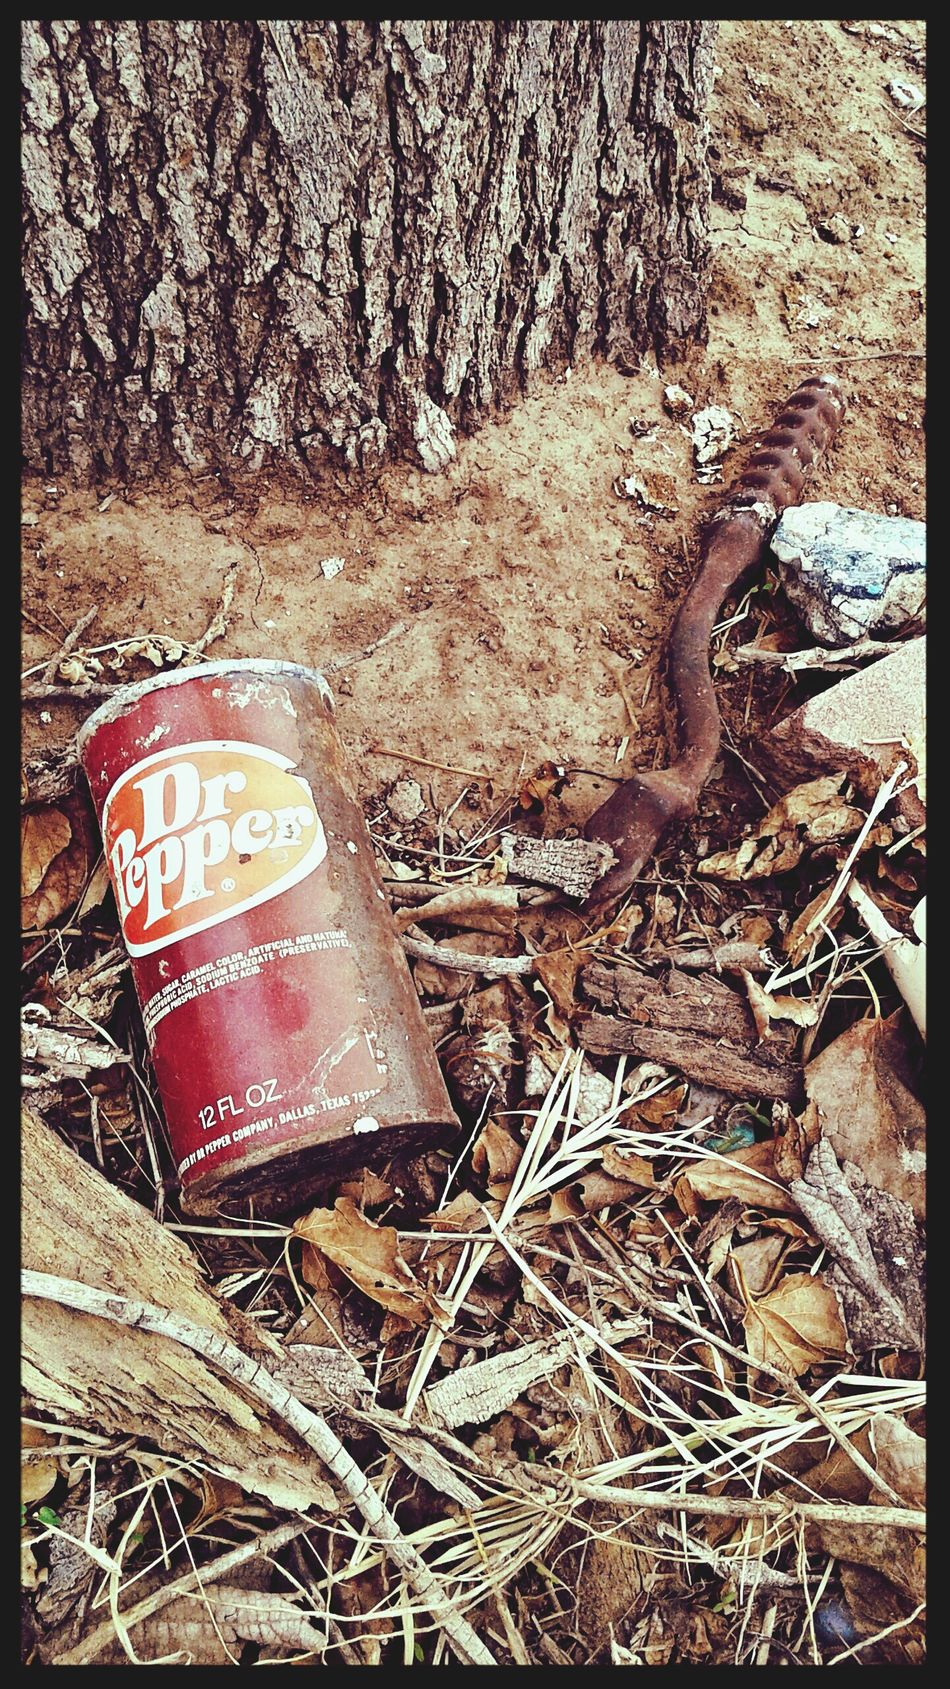 Dr. Pepper Left Behind Beauty In Ordinary Things Upclose  Soda Urban Debris Relic From The Past Drink Up Left On The Street 1960s Drpepper Old Can